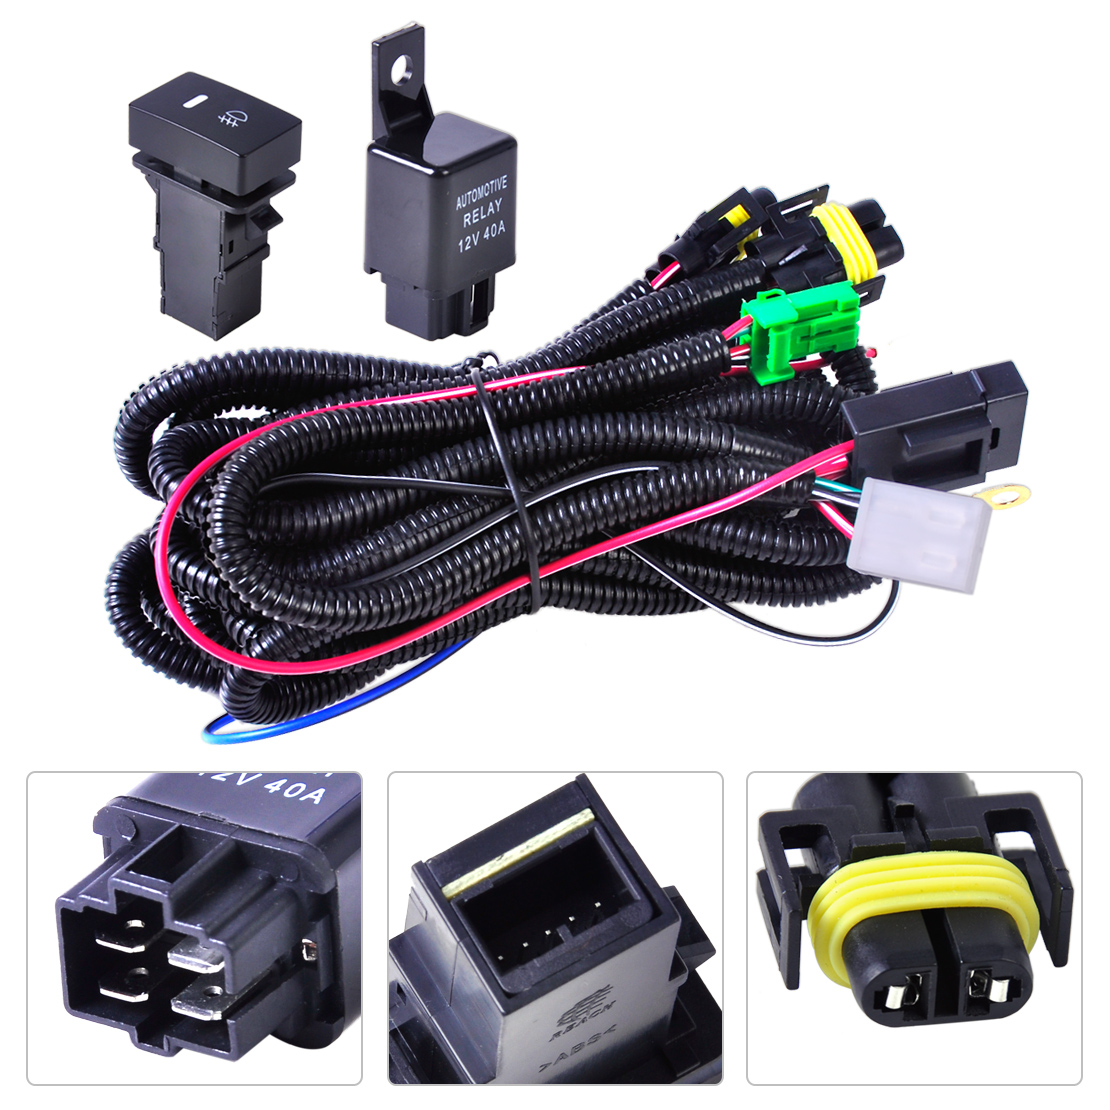 Beler Wiring Harness Sockets Wire Switch For H11 Fog Light Lamp Saab 9 3 Lighting Dwcx Ford Focus 2008